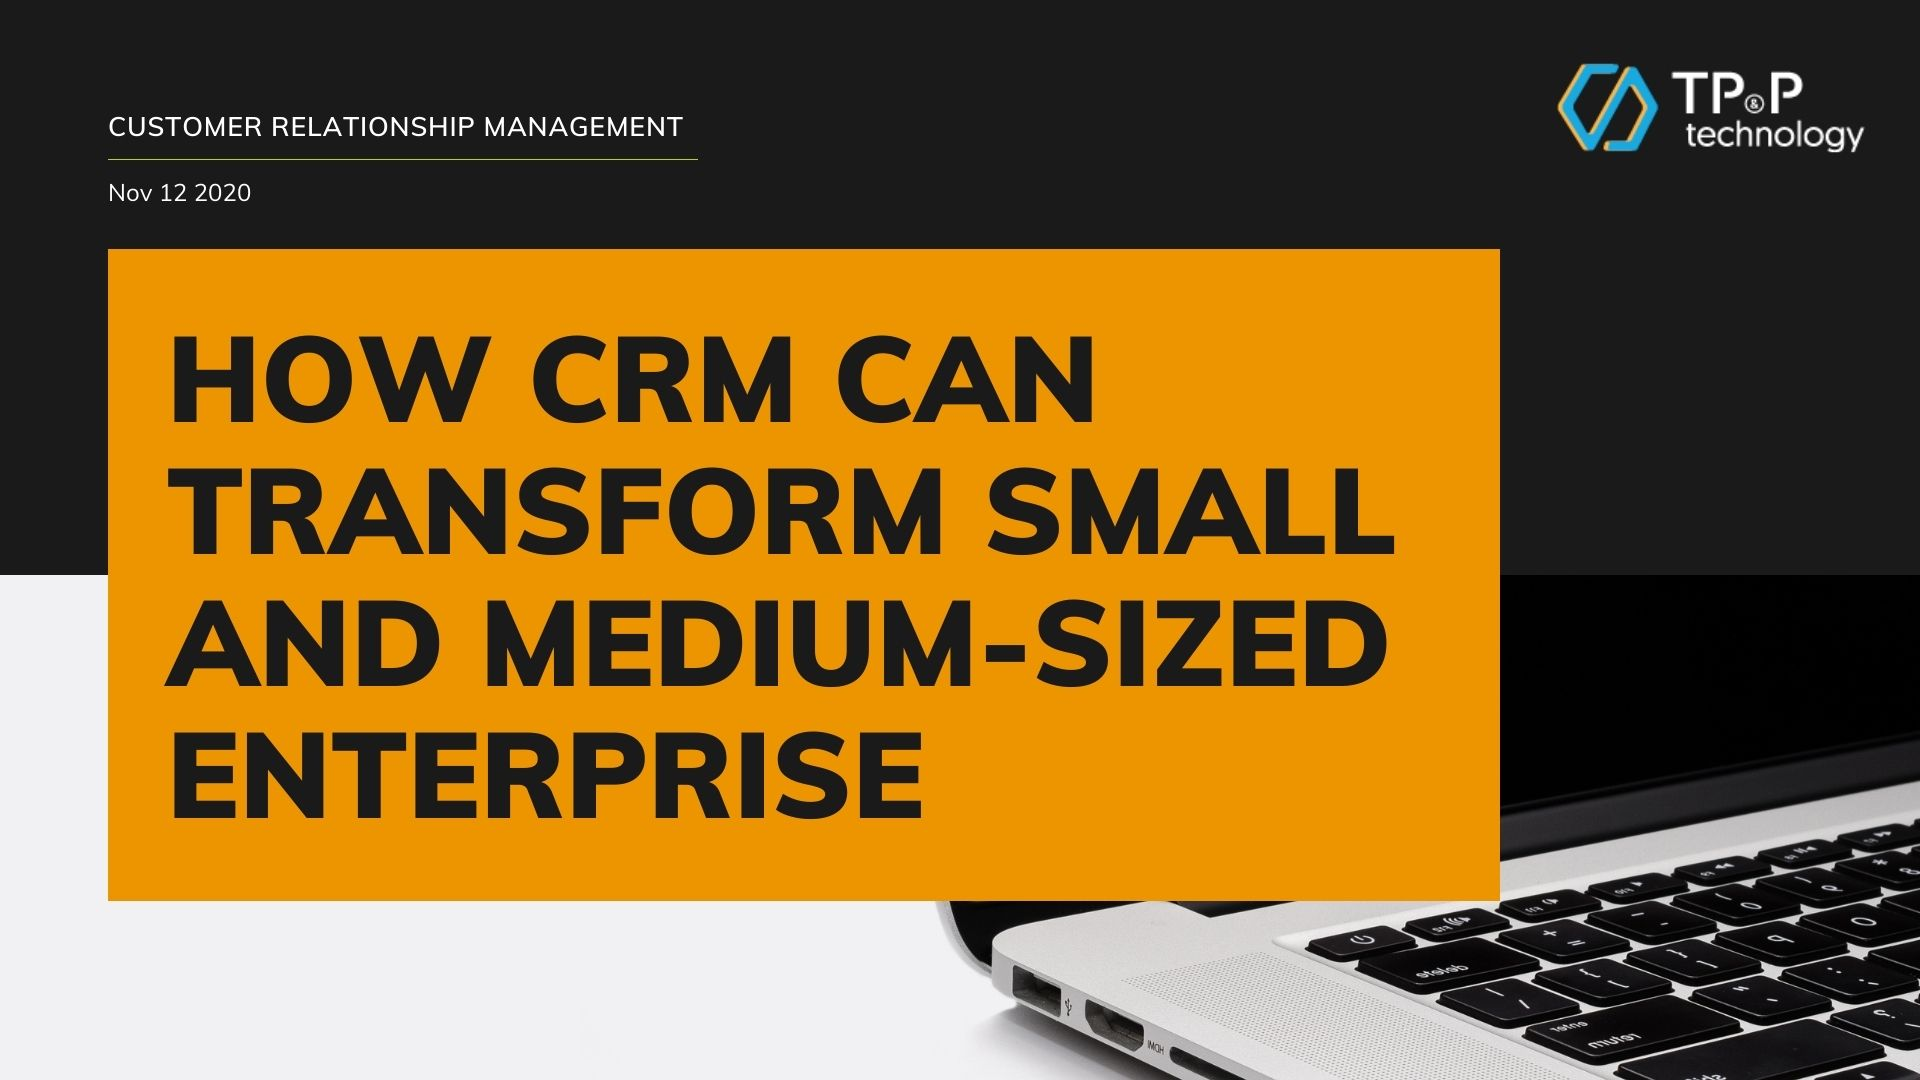 How CRM Can Transform Small And Medium-Sized Enterprise